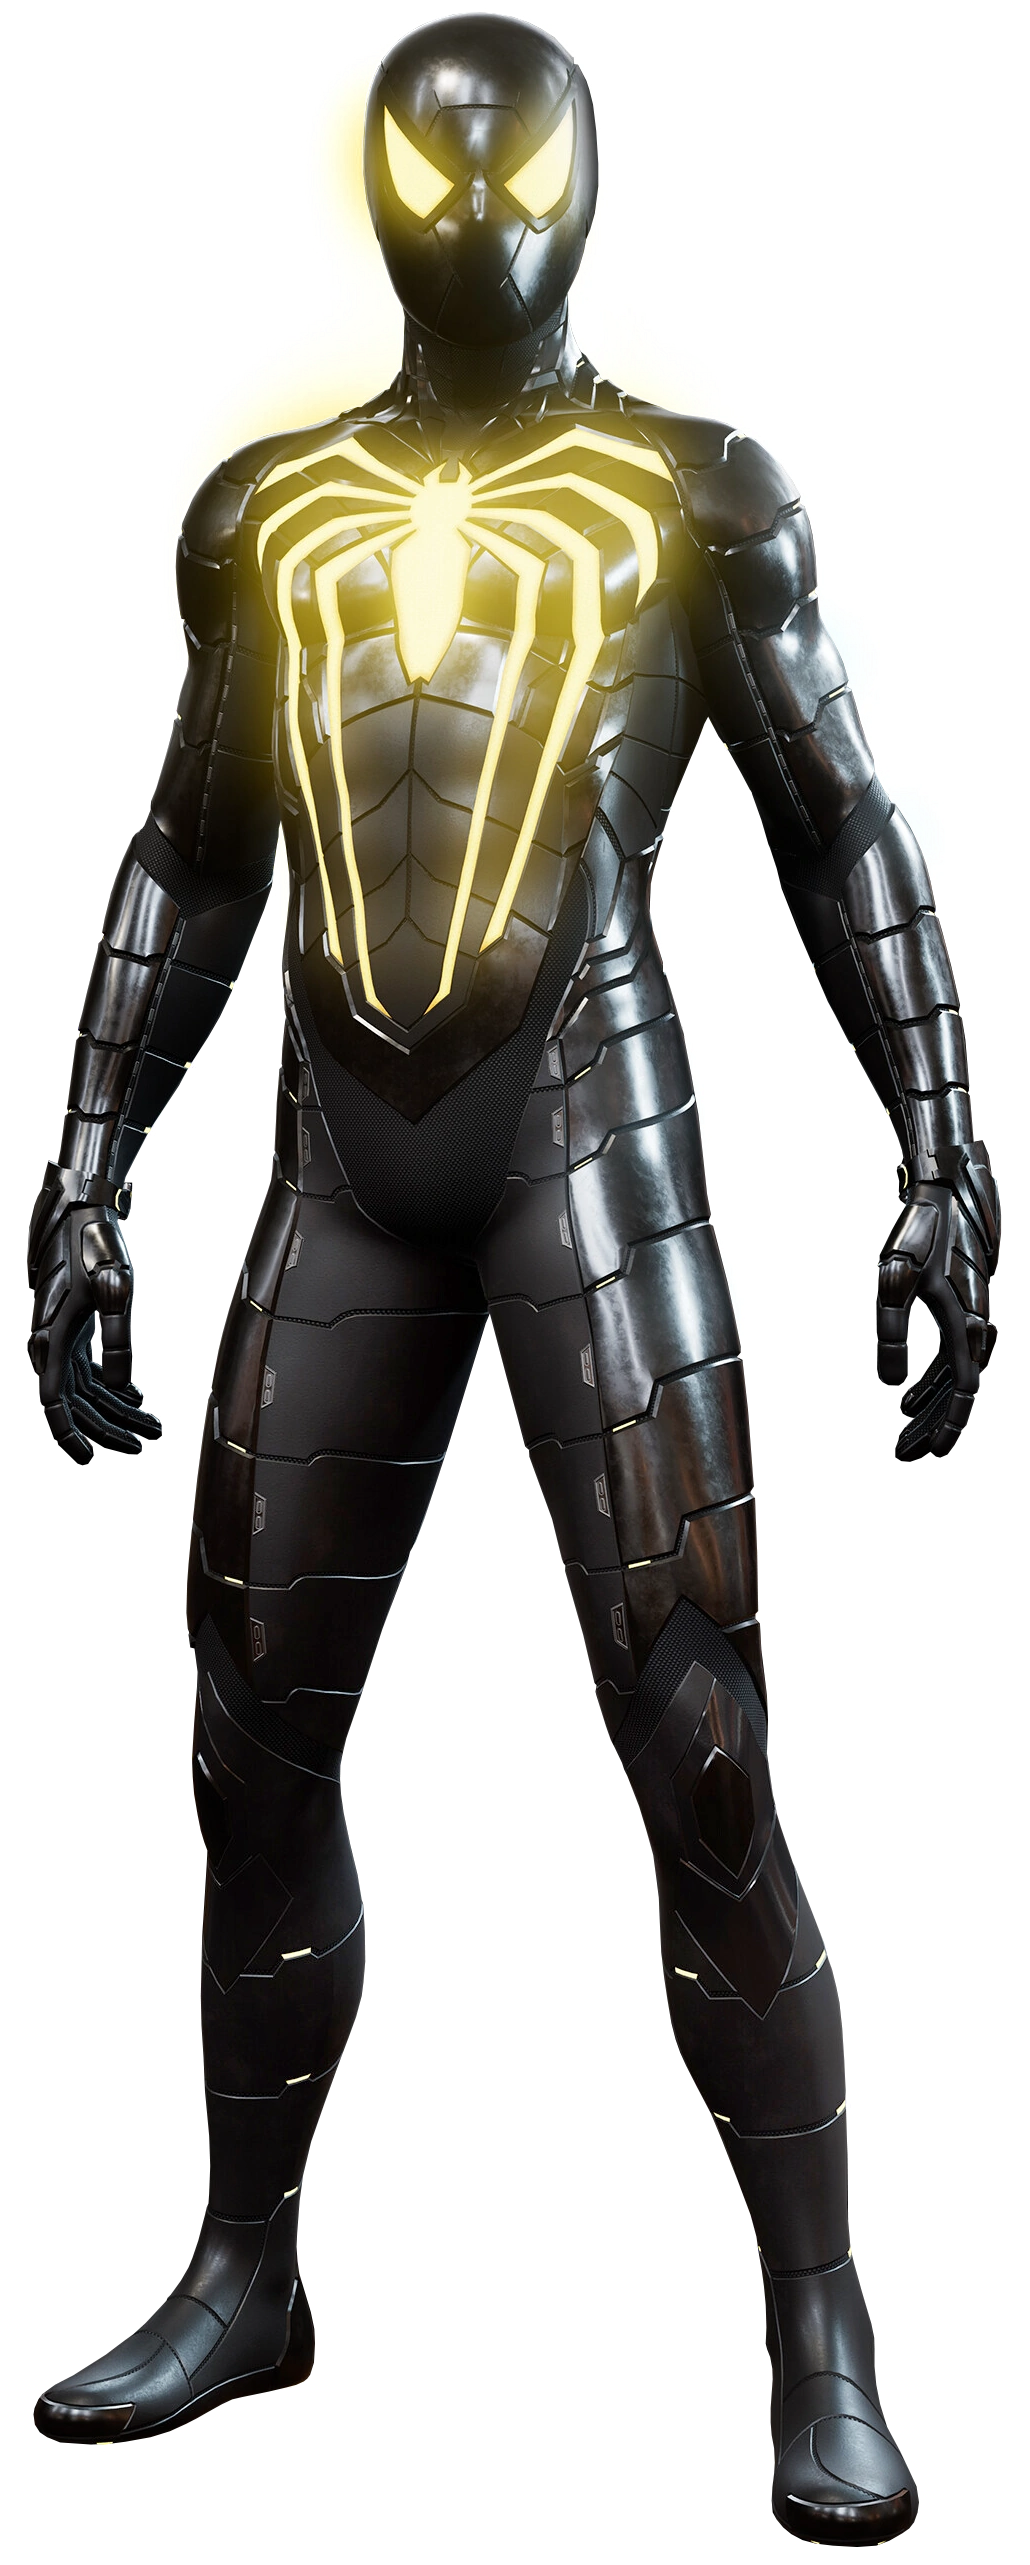 Anti-Ock Suit from Marvel's Spider-Man (video game) 001.png